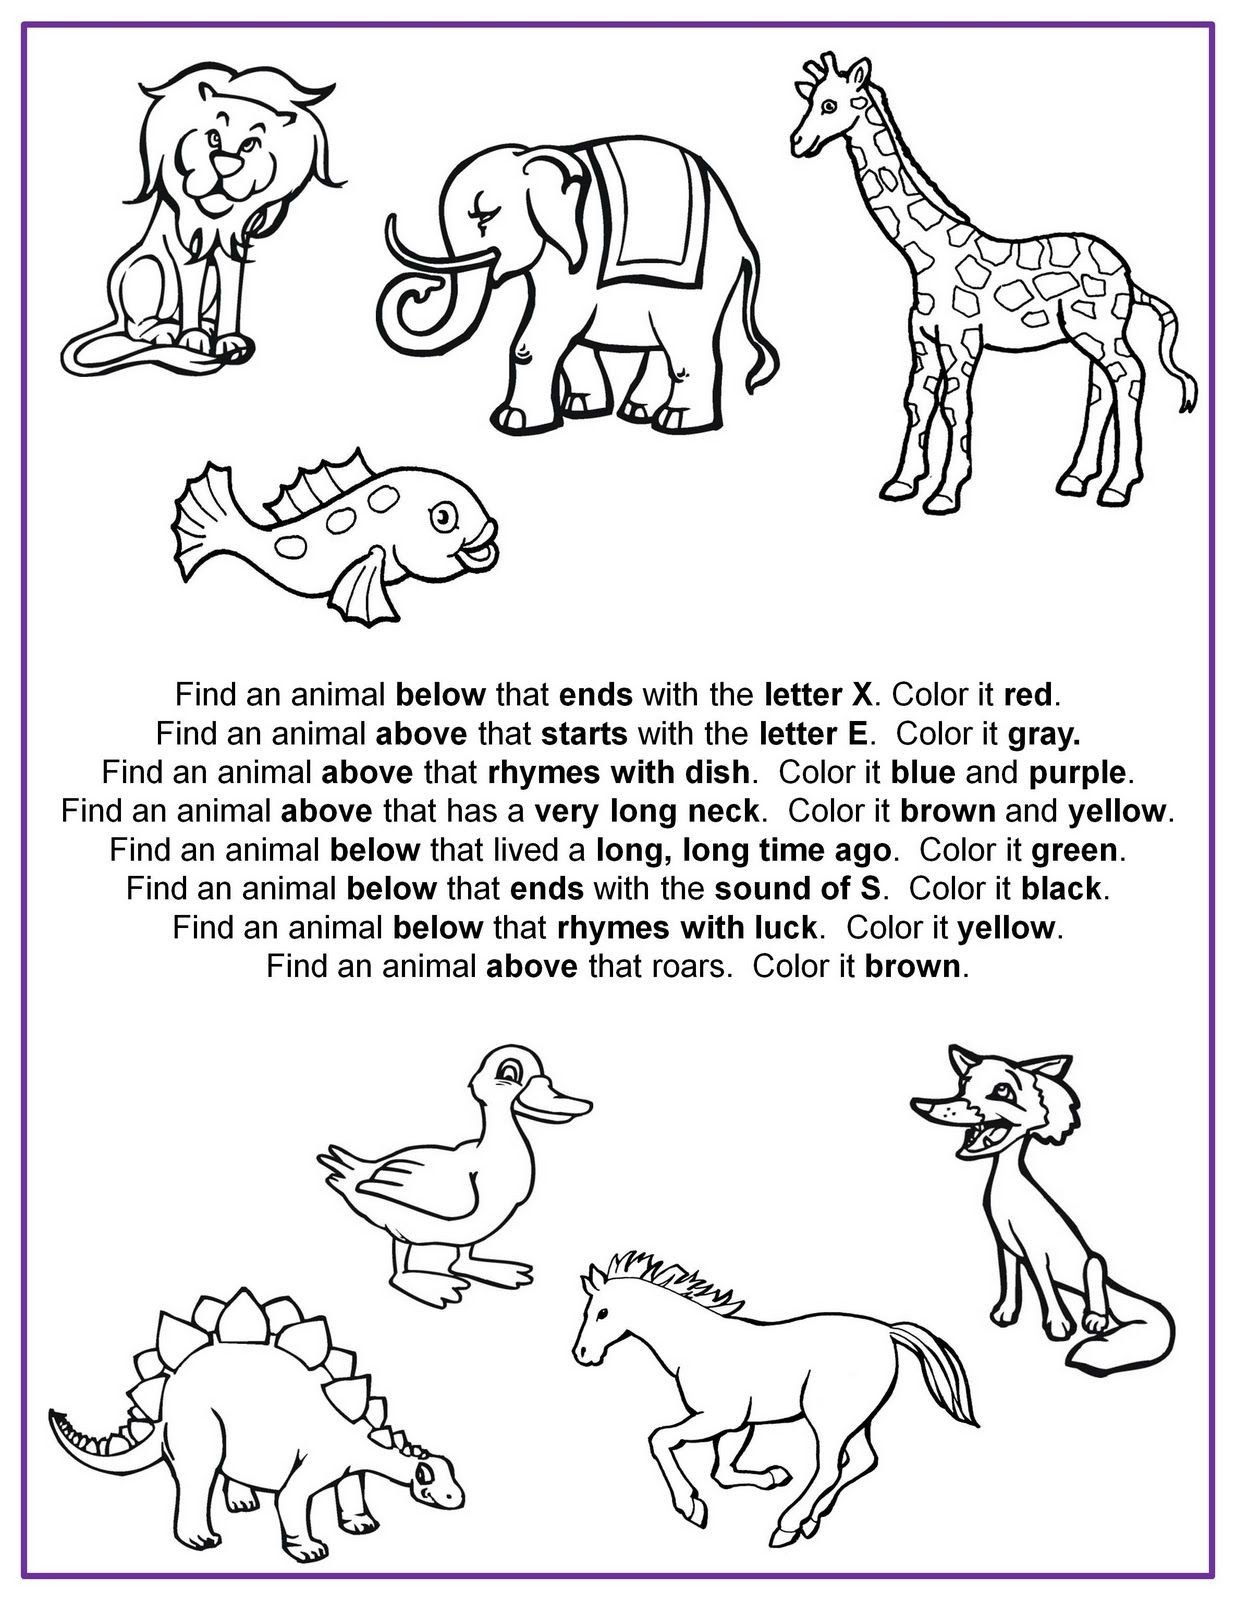 Following Directions Worksheets for Kindergarten Nonna and Me Find It Color It Following Directions